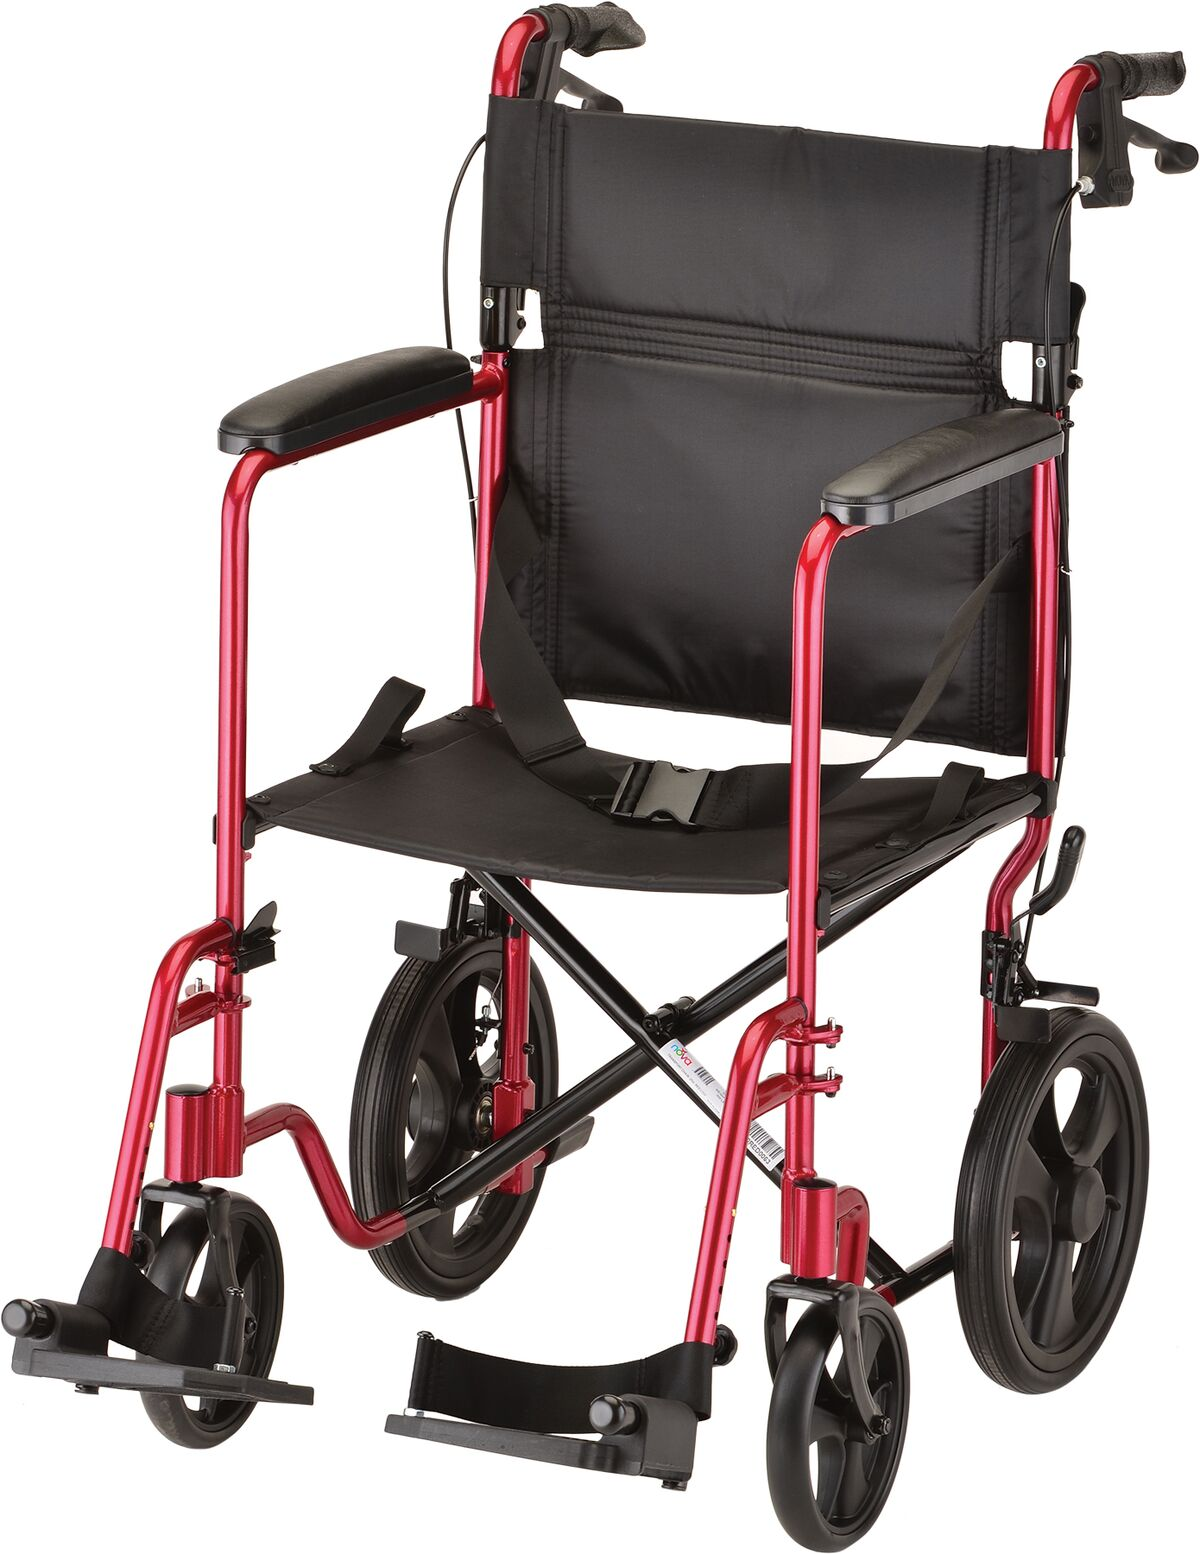 Annapolis Healthcare Supplies - Wheelchairs